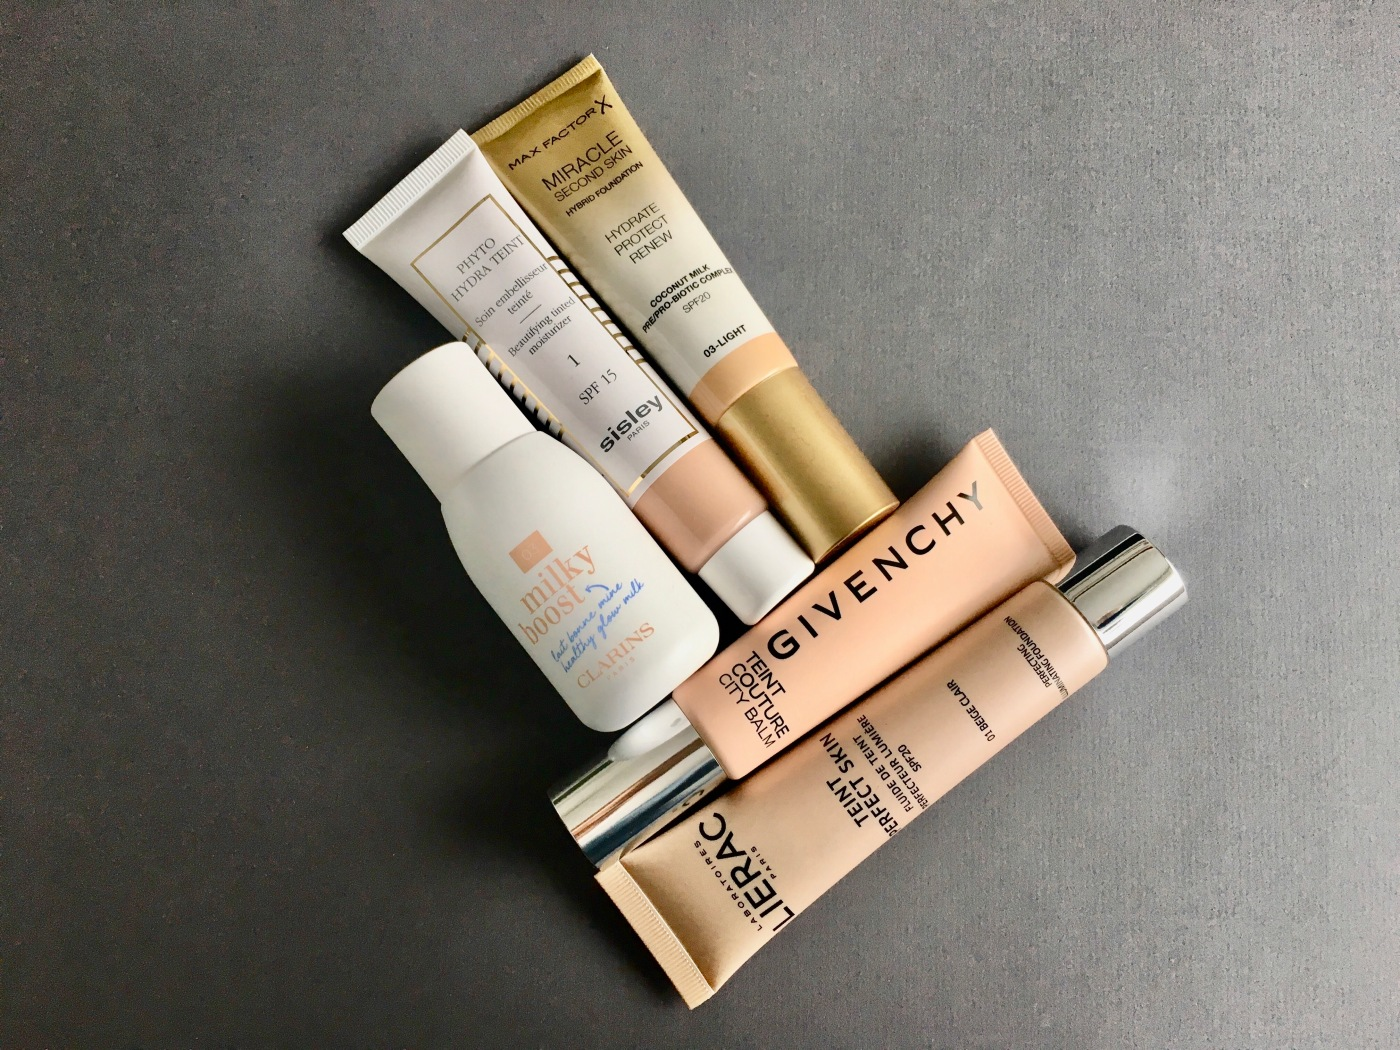 bb cream milky boost clarins teint couture city balm givenchy teint perfect skin lierac phyto hydra teint sisley miracle second skin max factor foundation bb cream